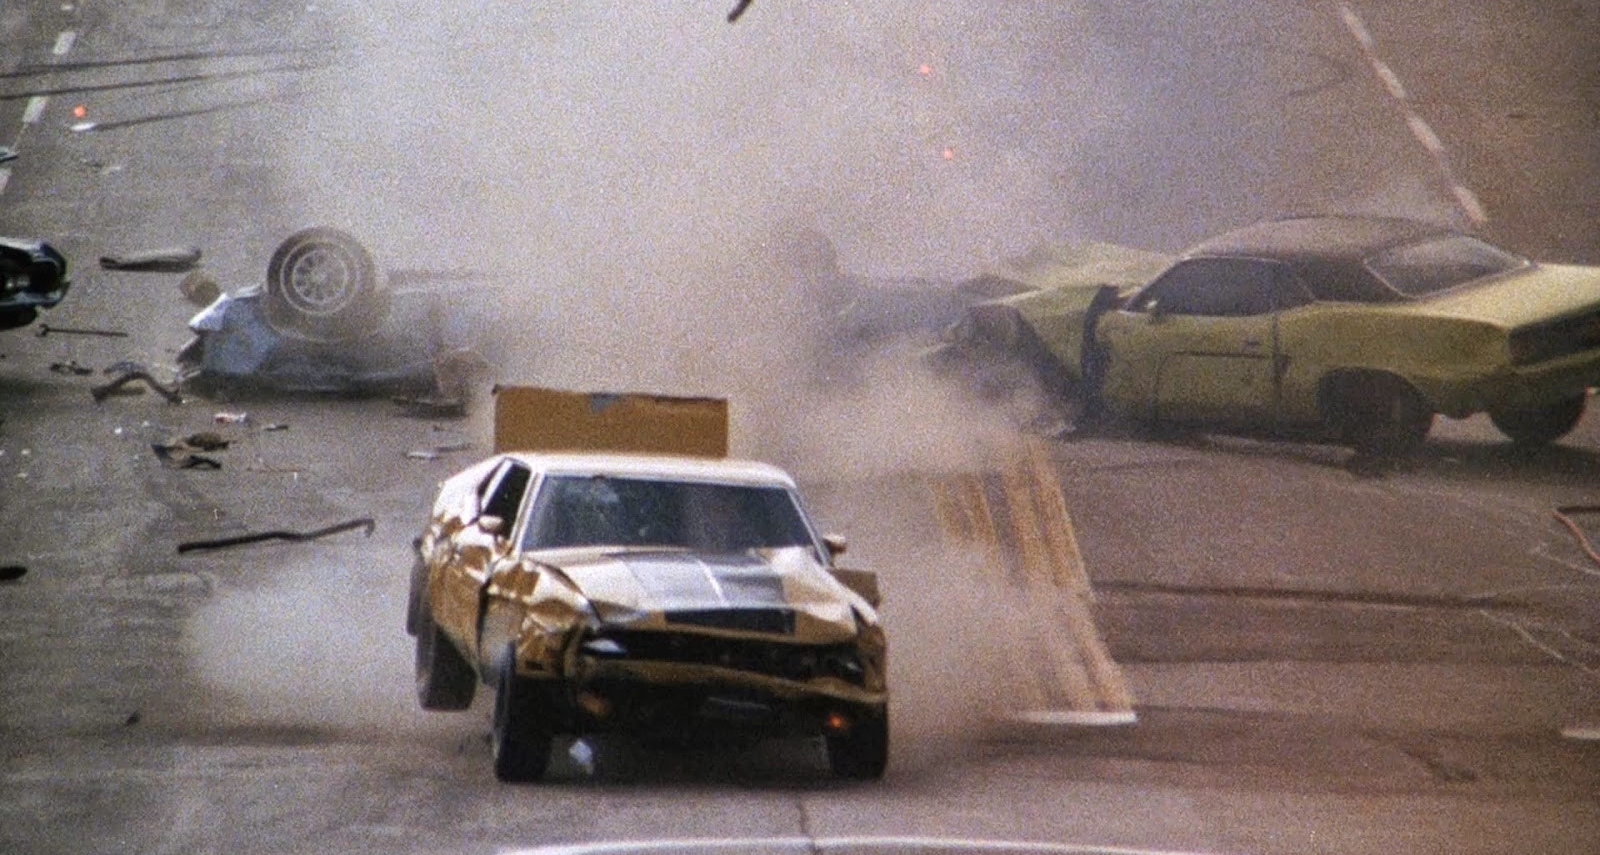 4.Gone in 60 Seconds 1974